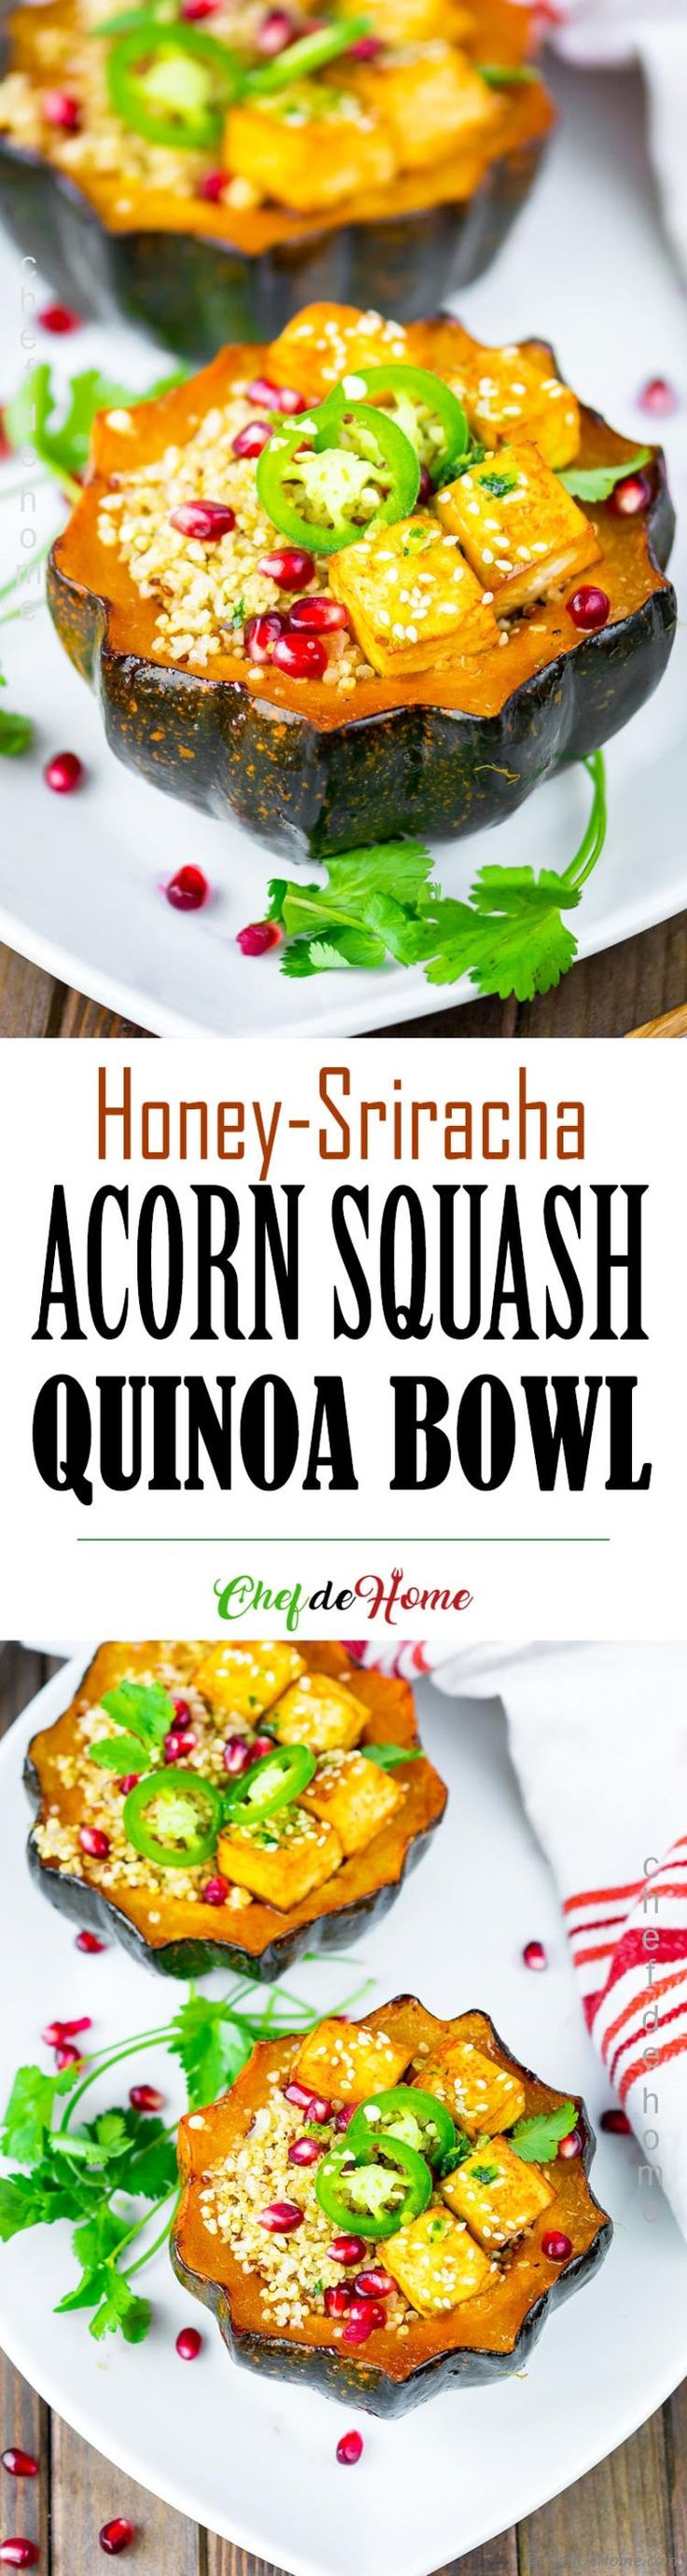 Sweet and Spicy, Honey and Sriracha Roasted Acorn Squash stuffed with garlicky quinoa, baked tofu and cilantro oil. This recipe can be a vegetarian's Thanksgiving feast or fall inspired meatless Monday Quinoa Bowl packed with nutrients and TON of flavor. Gluten free.